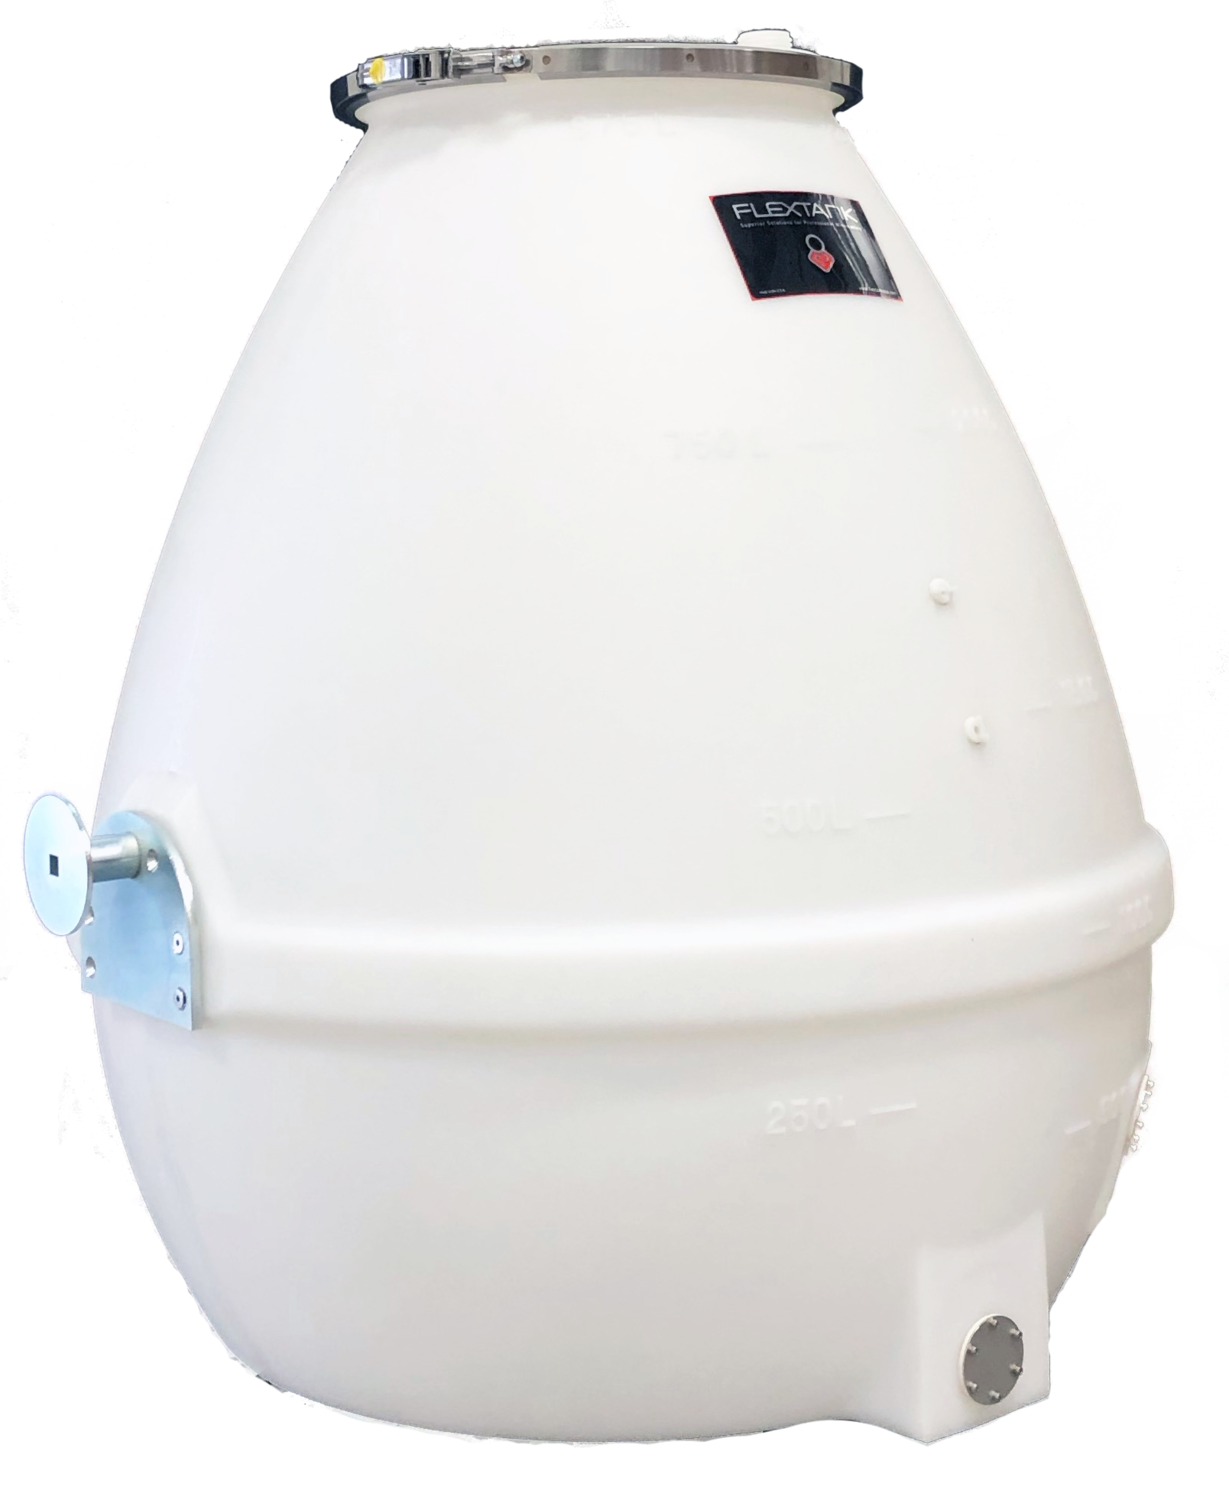 230 Gallon Apollo Egg Tank